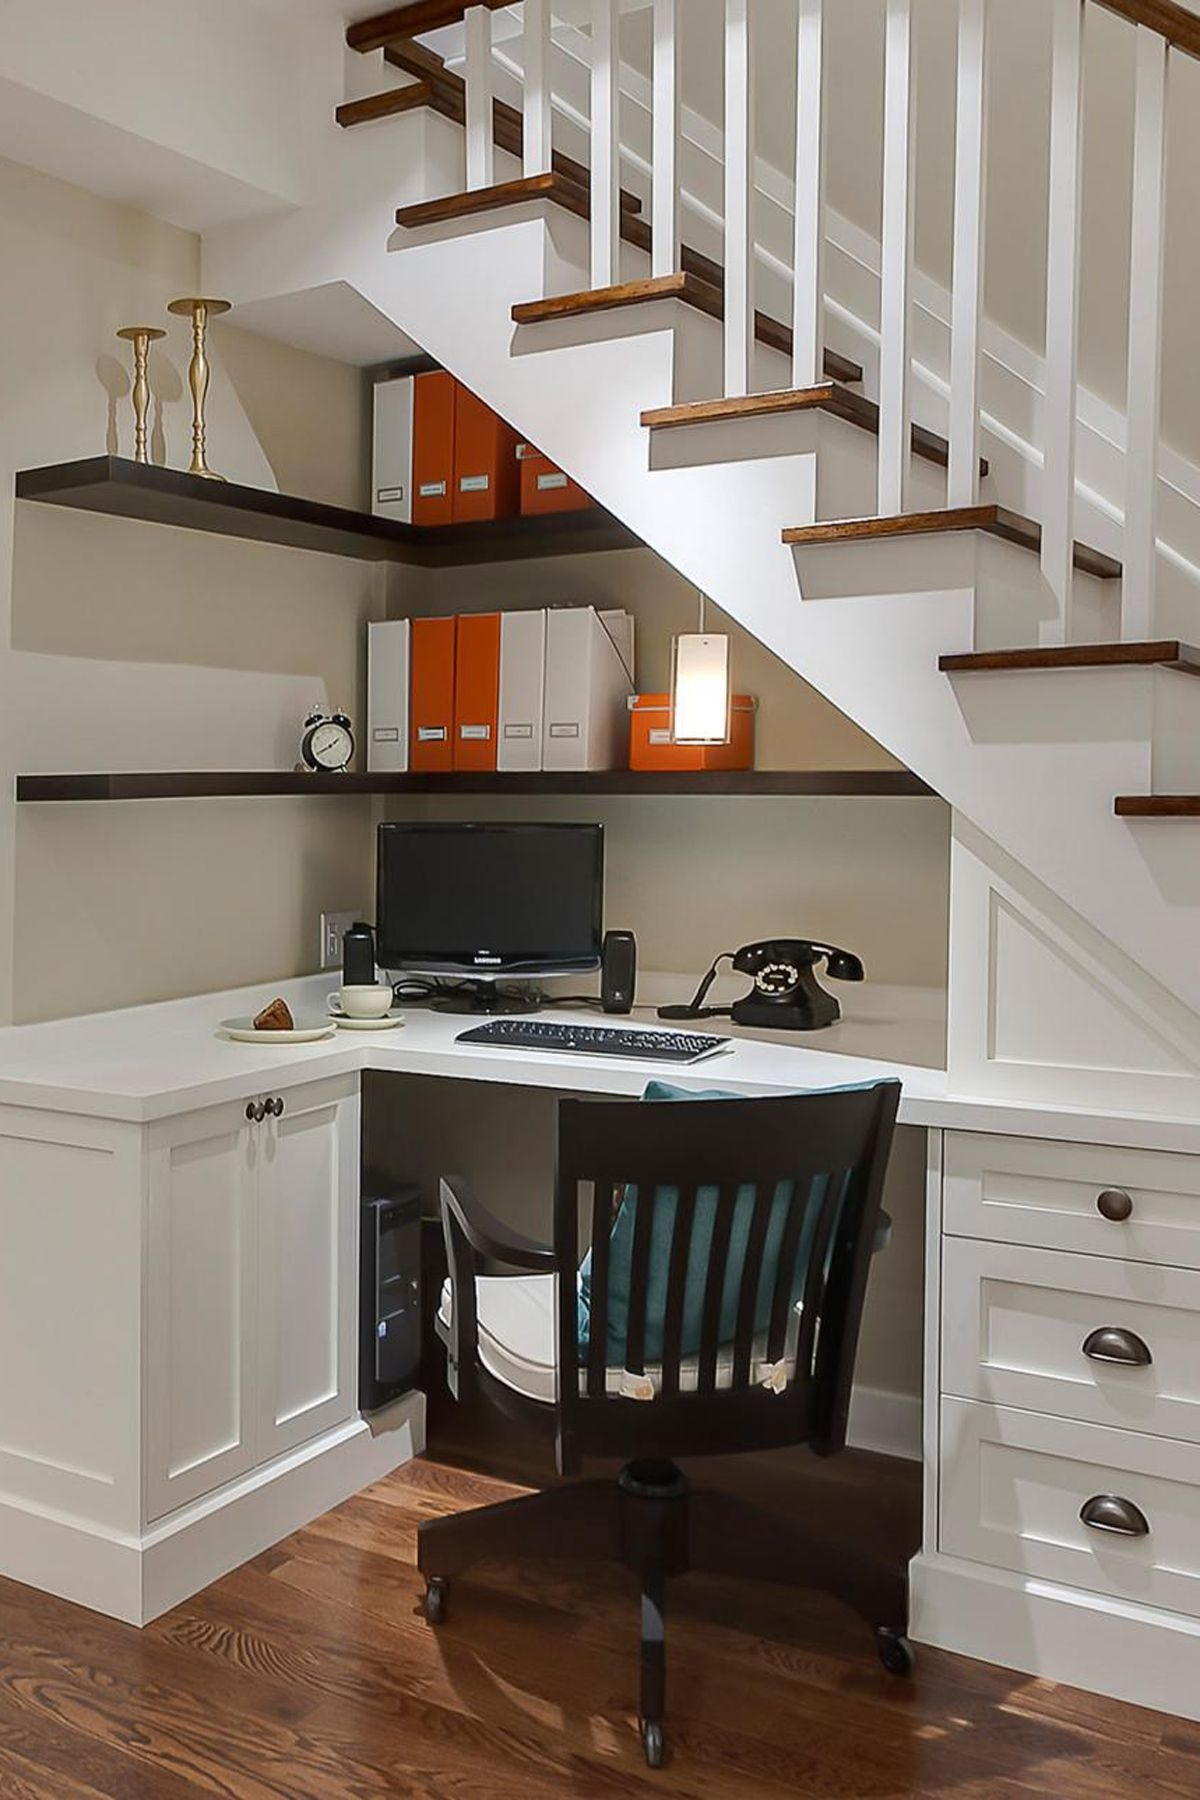 20 Best Under Stair Storage Ideas What To Do With Empty Space | Small Kitchen Design Under Stairs | Stair Storage | Dining Room | Basement Kitchenette | Space Saving | Small Spaces